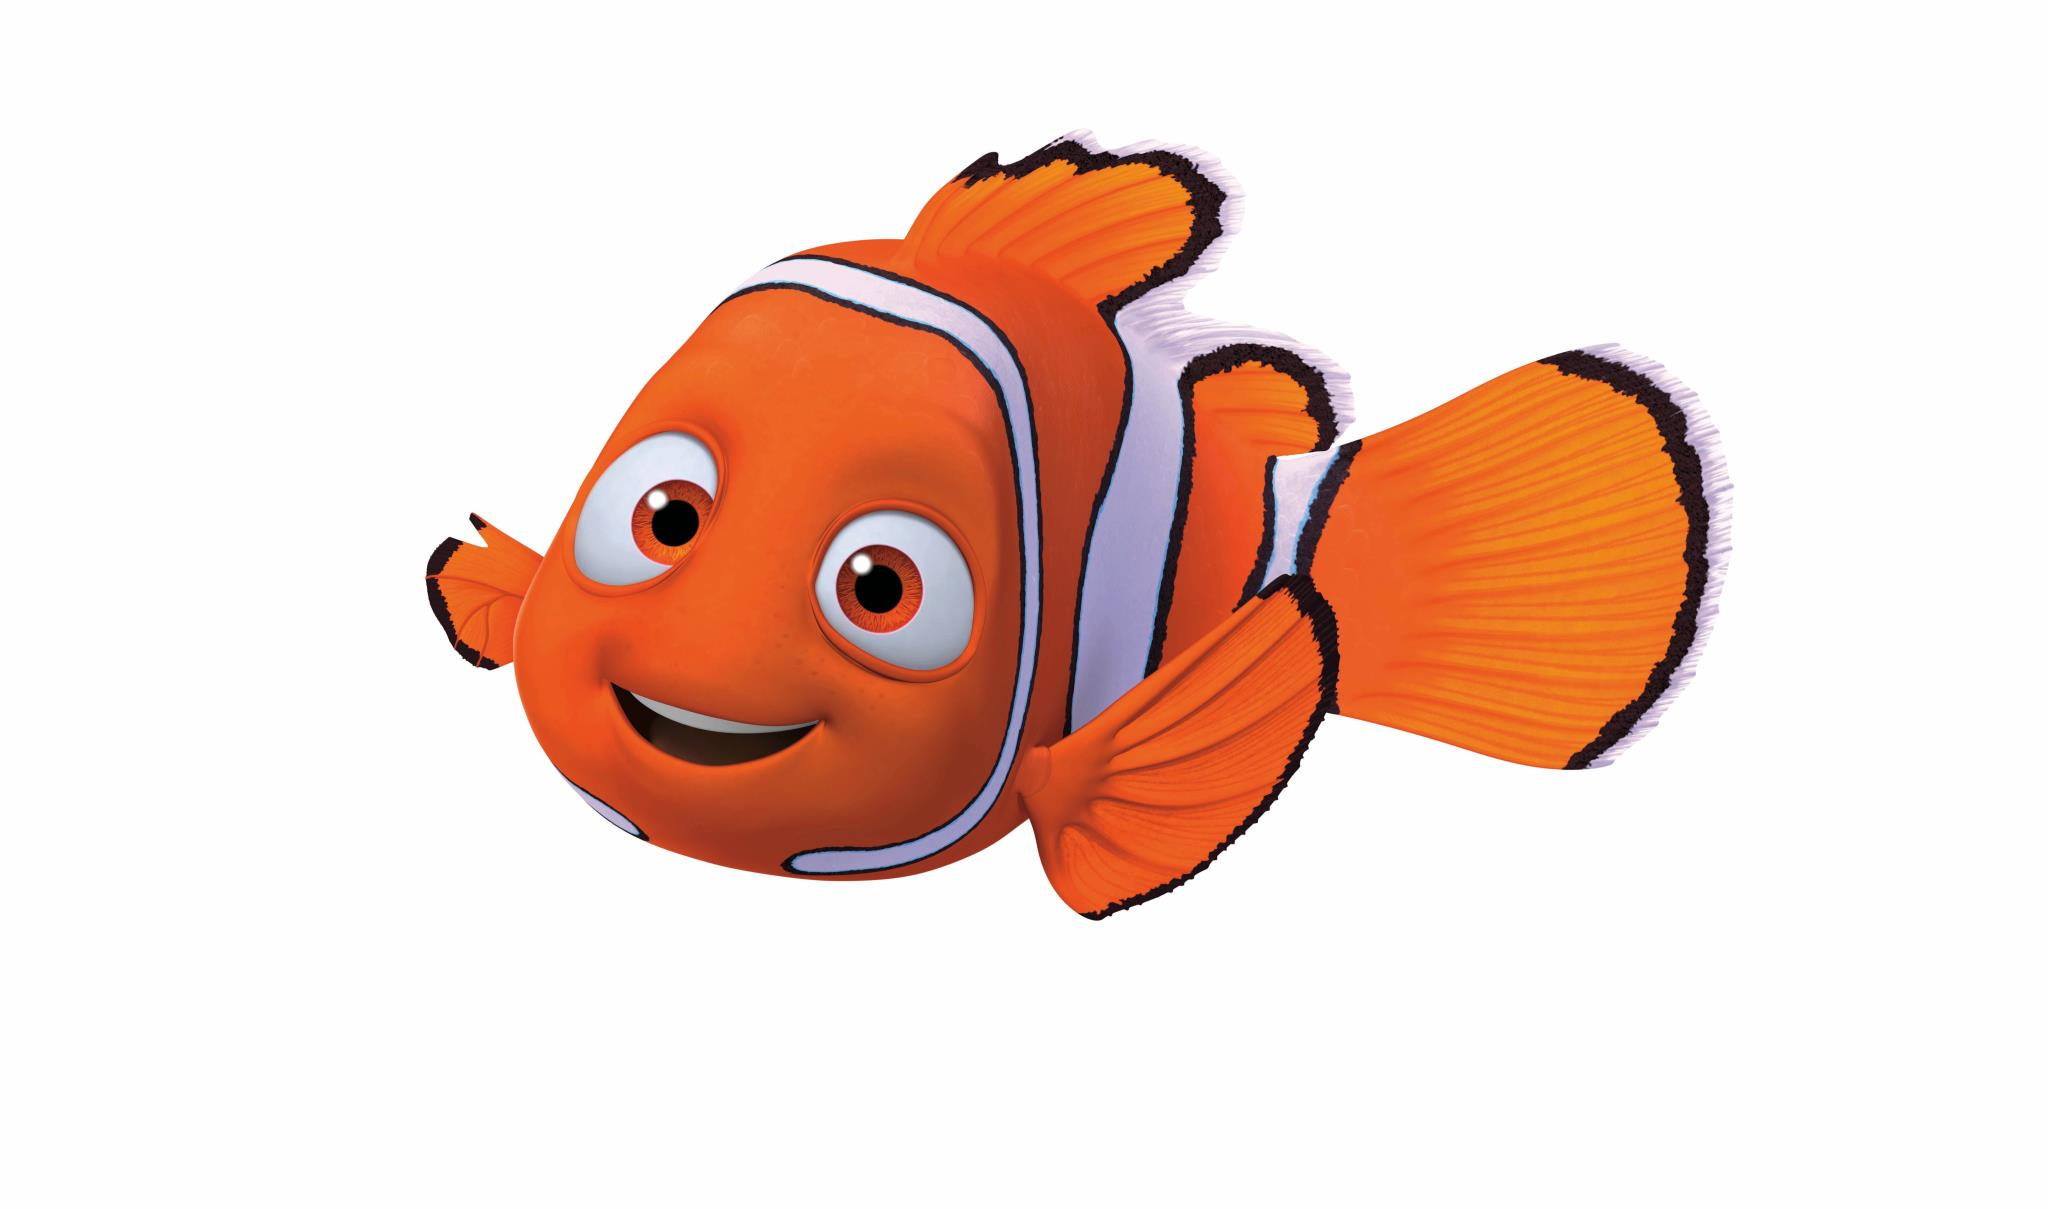 Clip Art Finding Nemo Clip Art fish nemo clipart kid finding hiu 19343 hd wallpapers